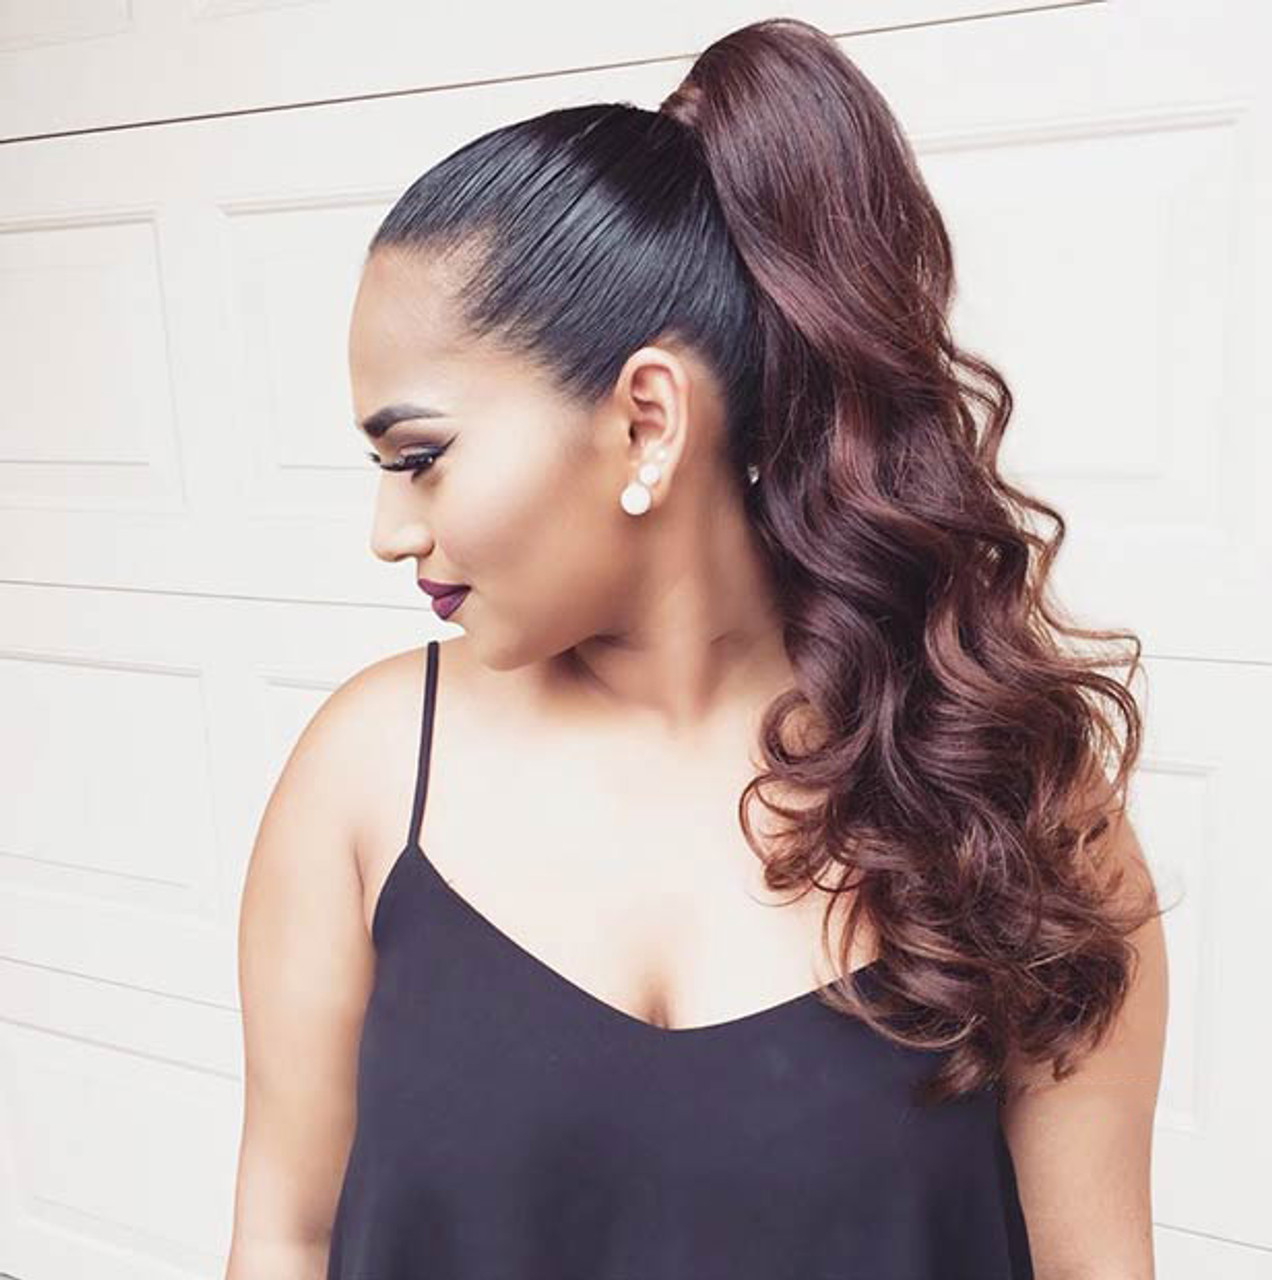 Remeehi straight remy human hair clip ponytails 100g human hair image custom ponytail remy human hair clip in ponytails 100g human hair extensions pmusecretfo Image collections